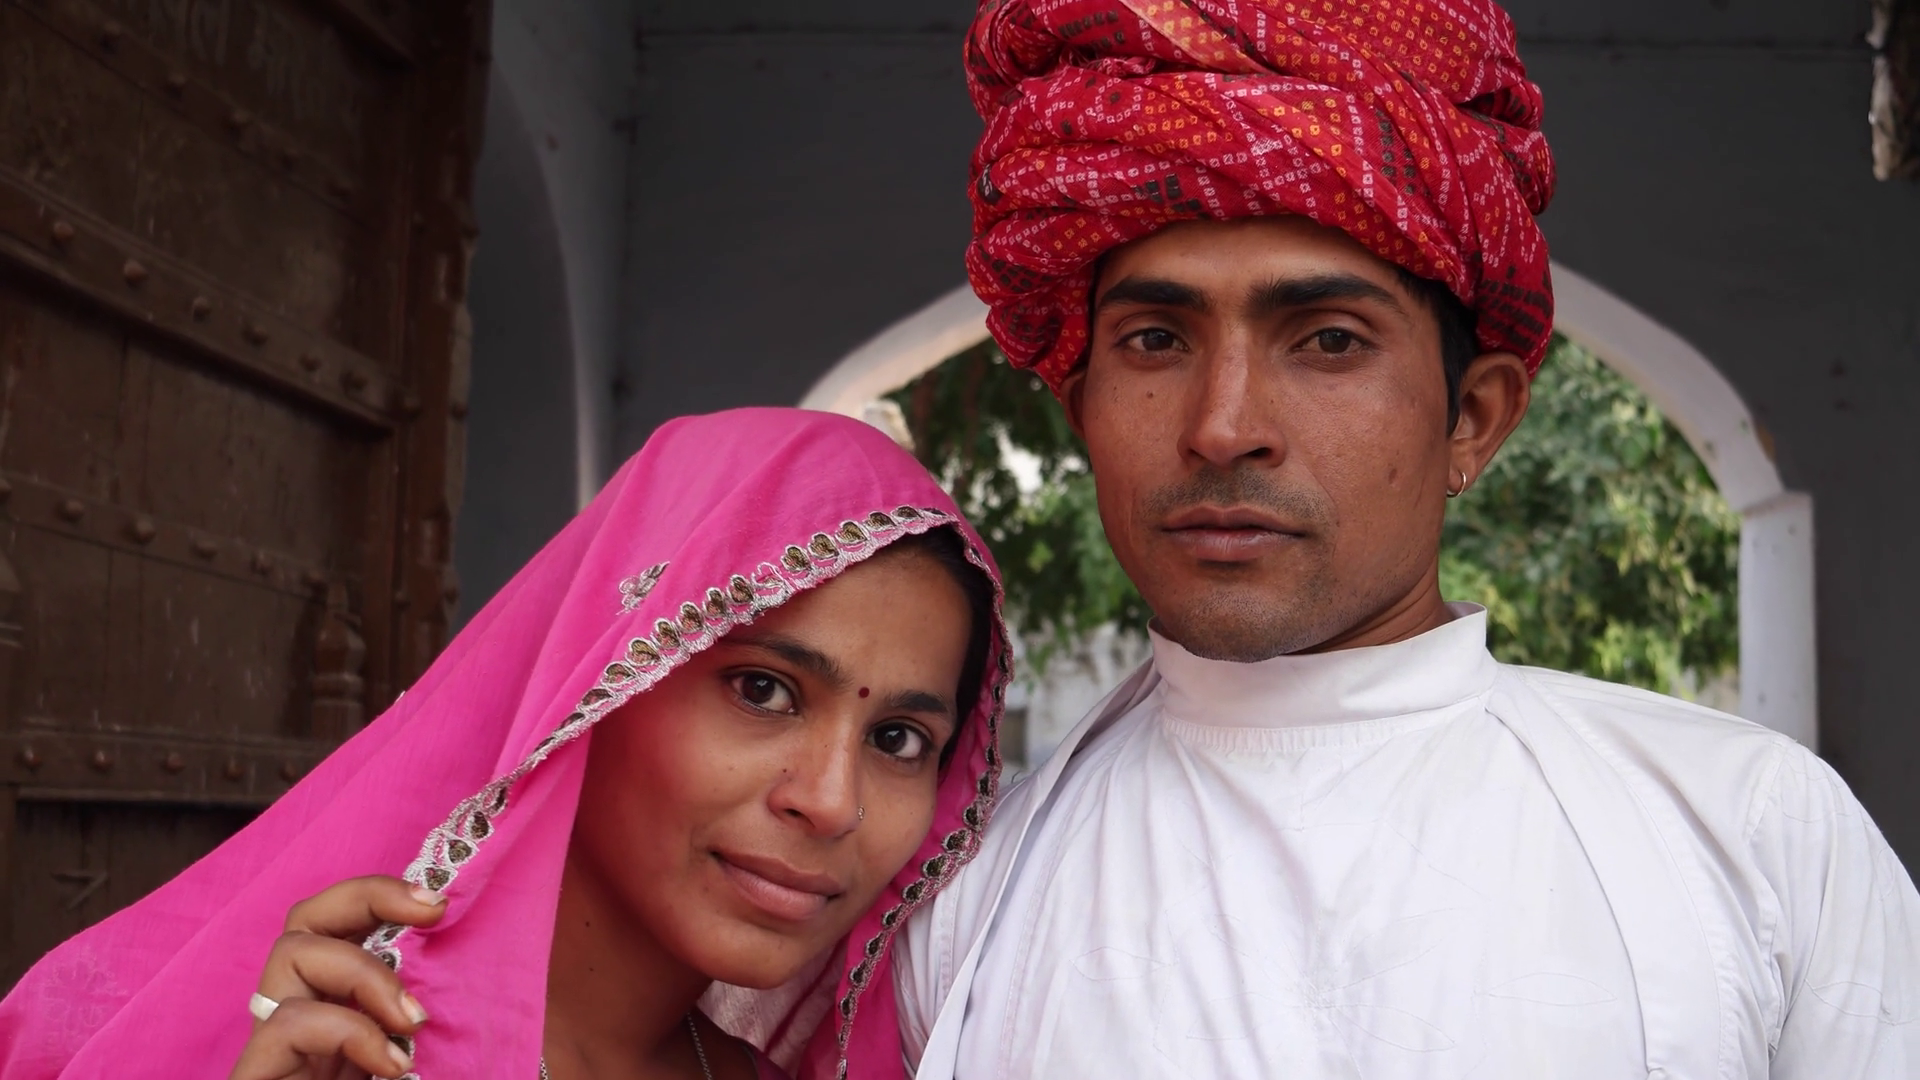 Traditional Dress Of Rajasthan Png - Attractive Indian Couple In Traditional Dress Against Old Heritage Architectural Backdrop In Rajasthan, India Stock Video Footage   Videoblocks, Transparent background PNG HD thumbnail